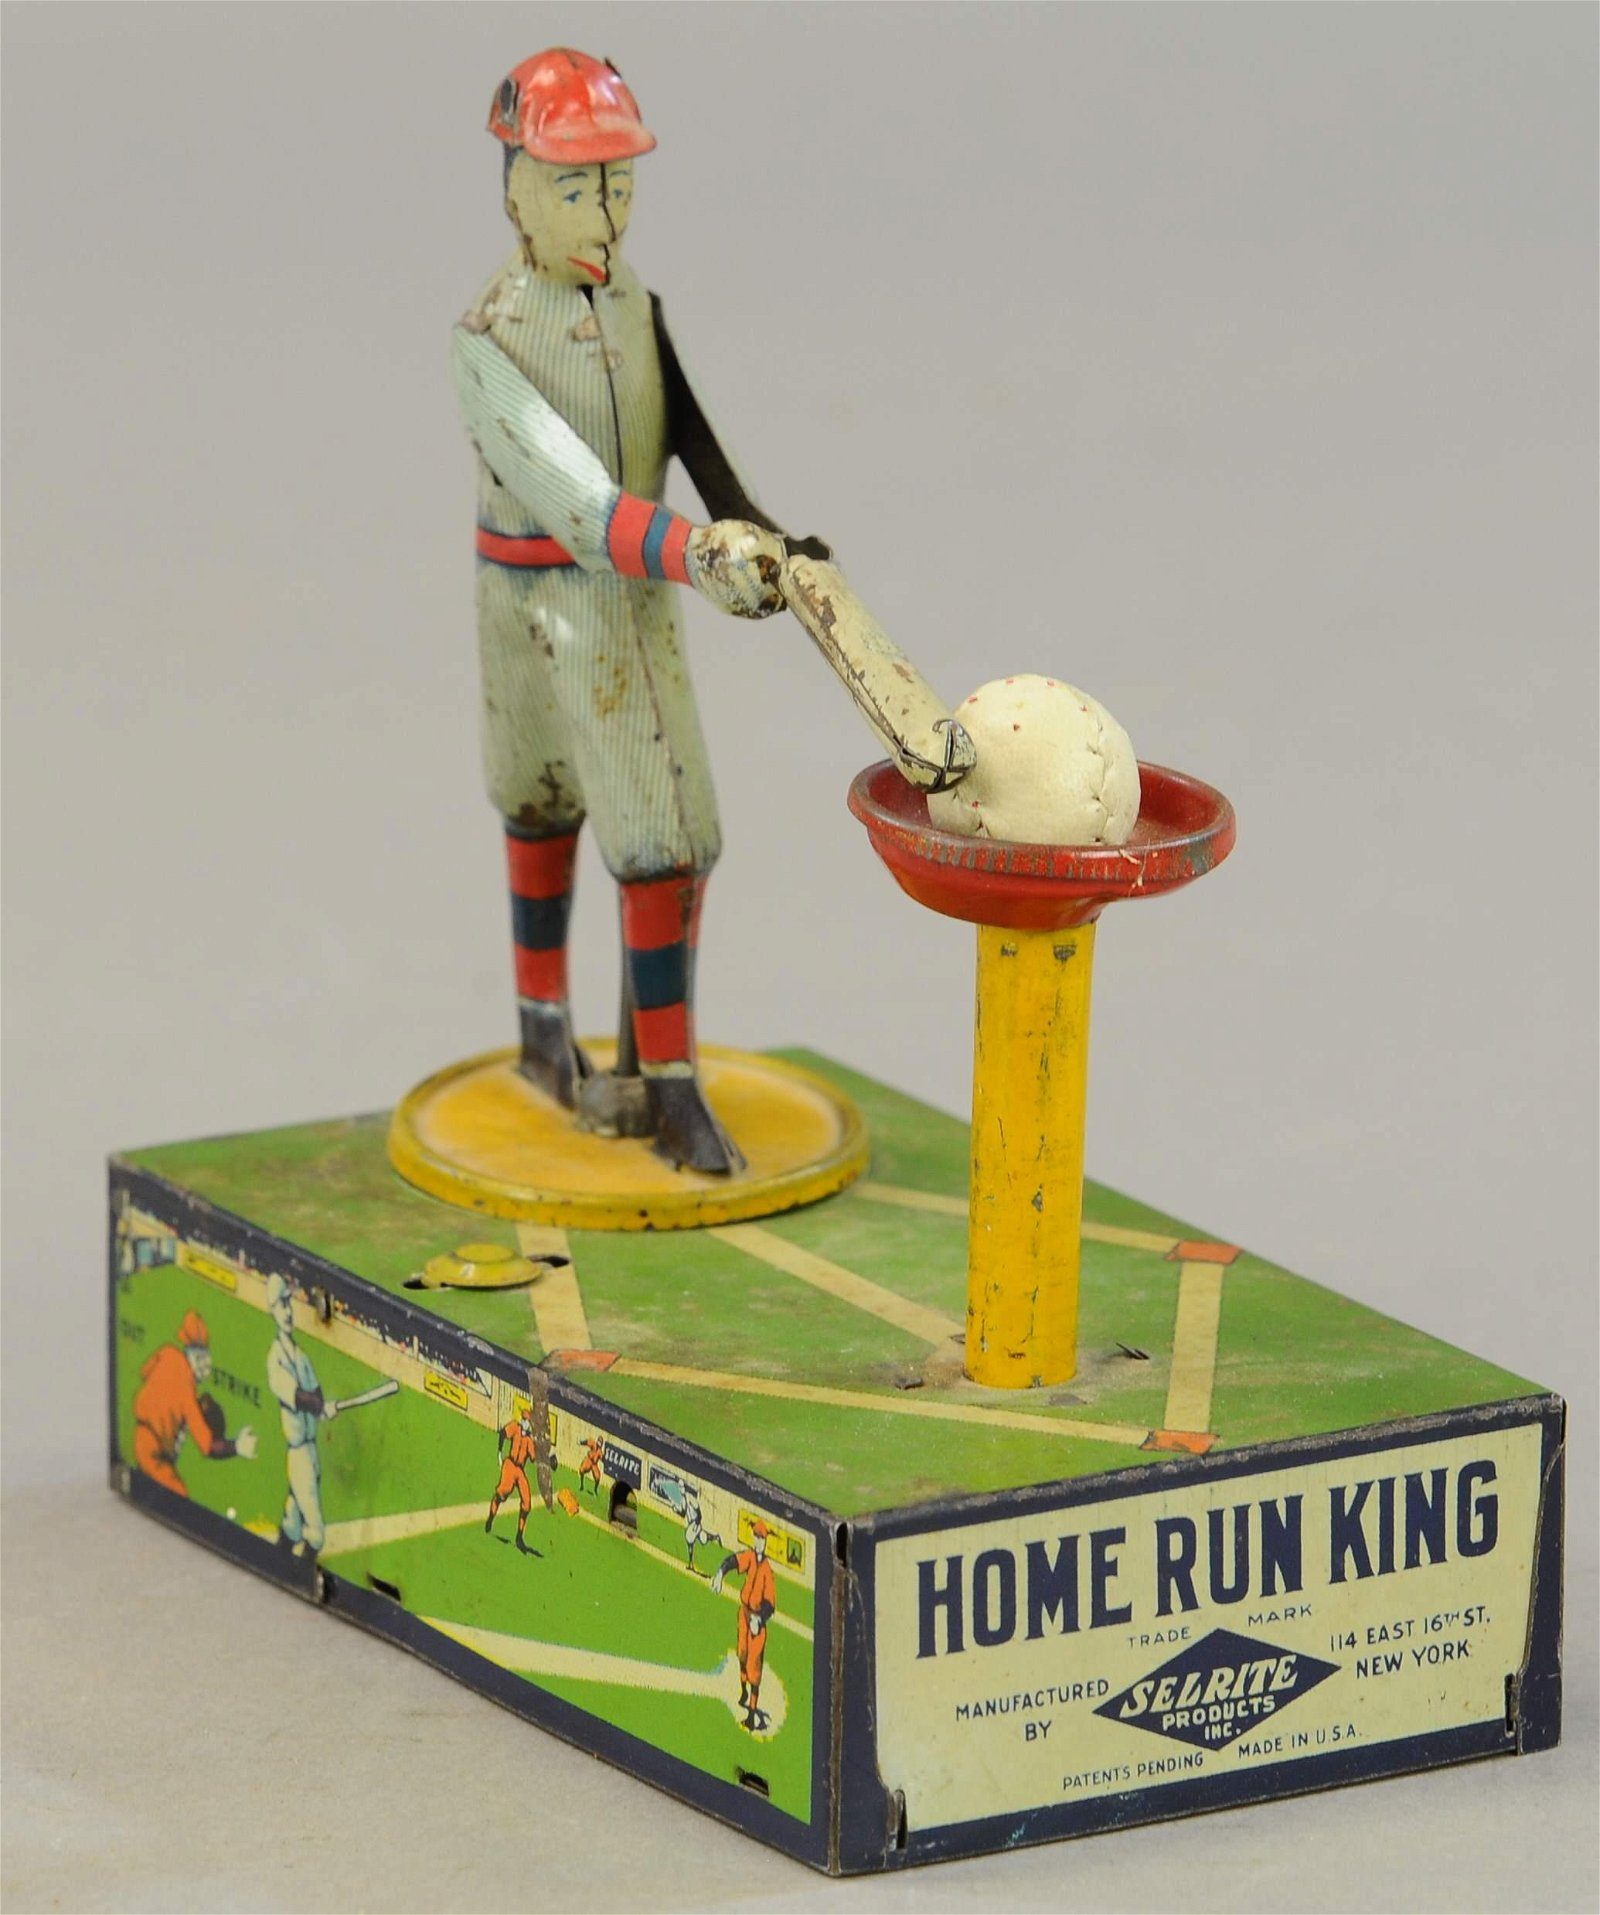 SELRITE PRODUCTS HOME RUN KING